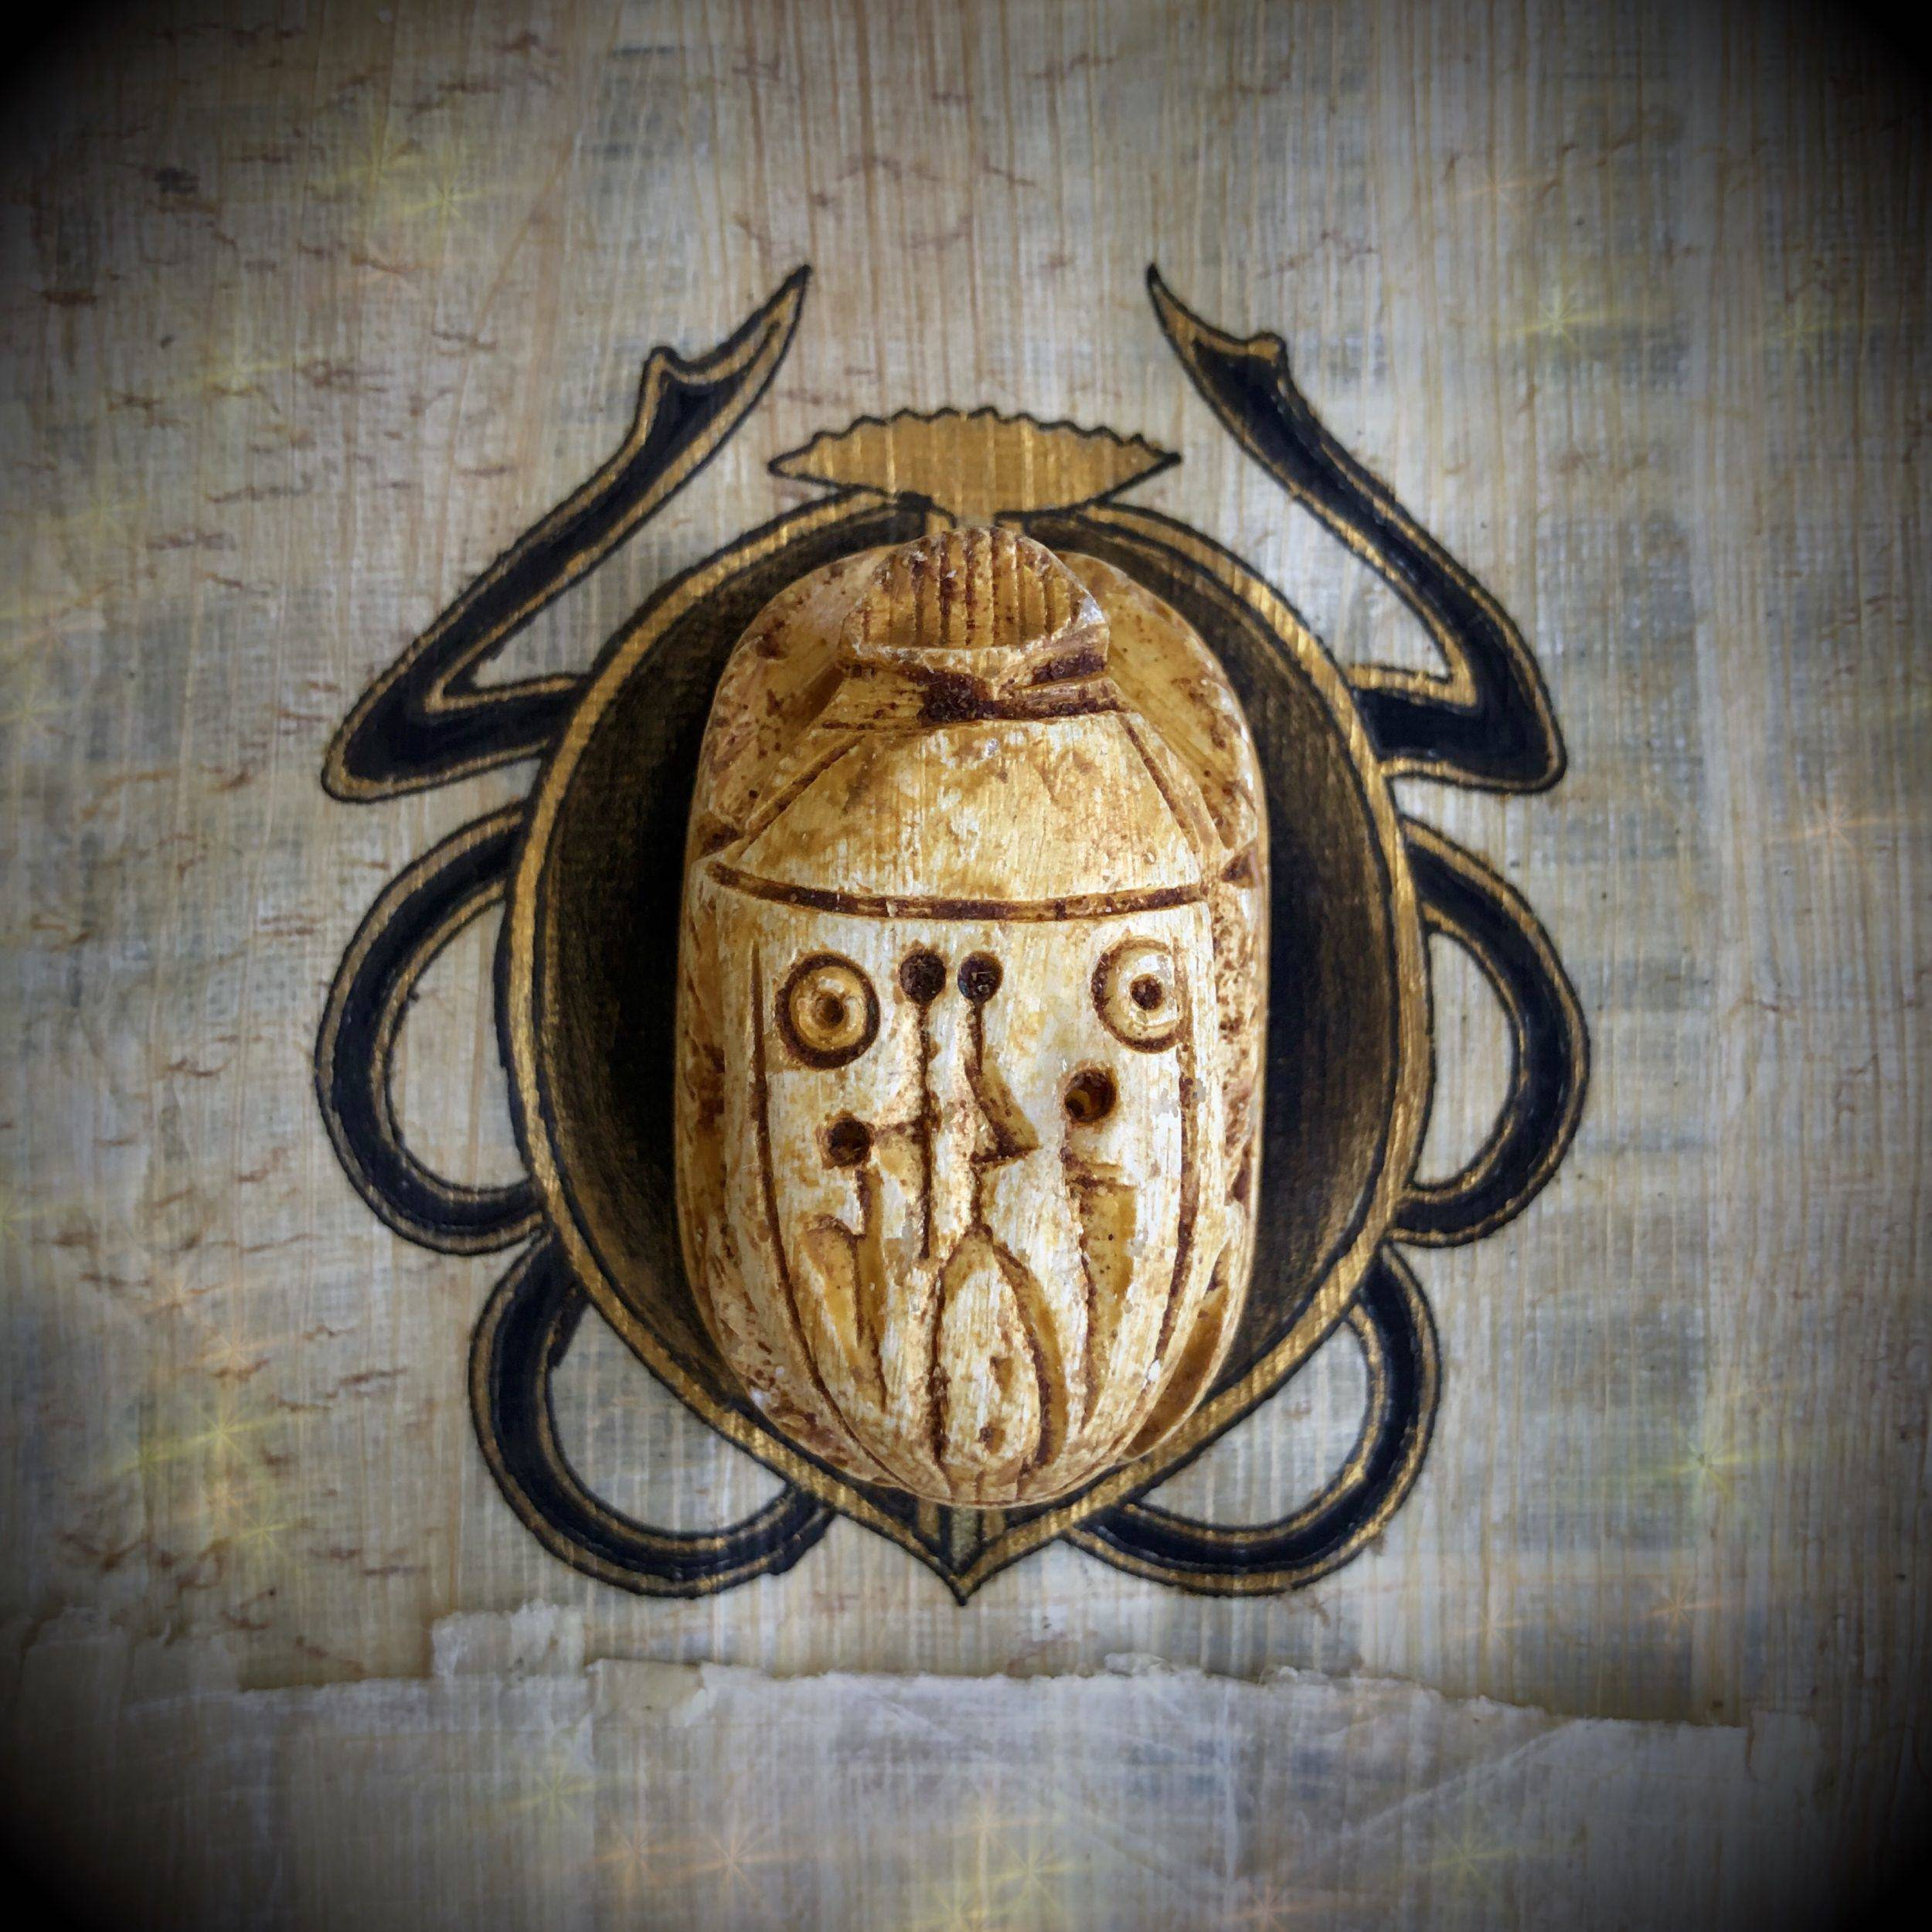 Egyptian Scarab Beetles for transformation and regeneration